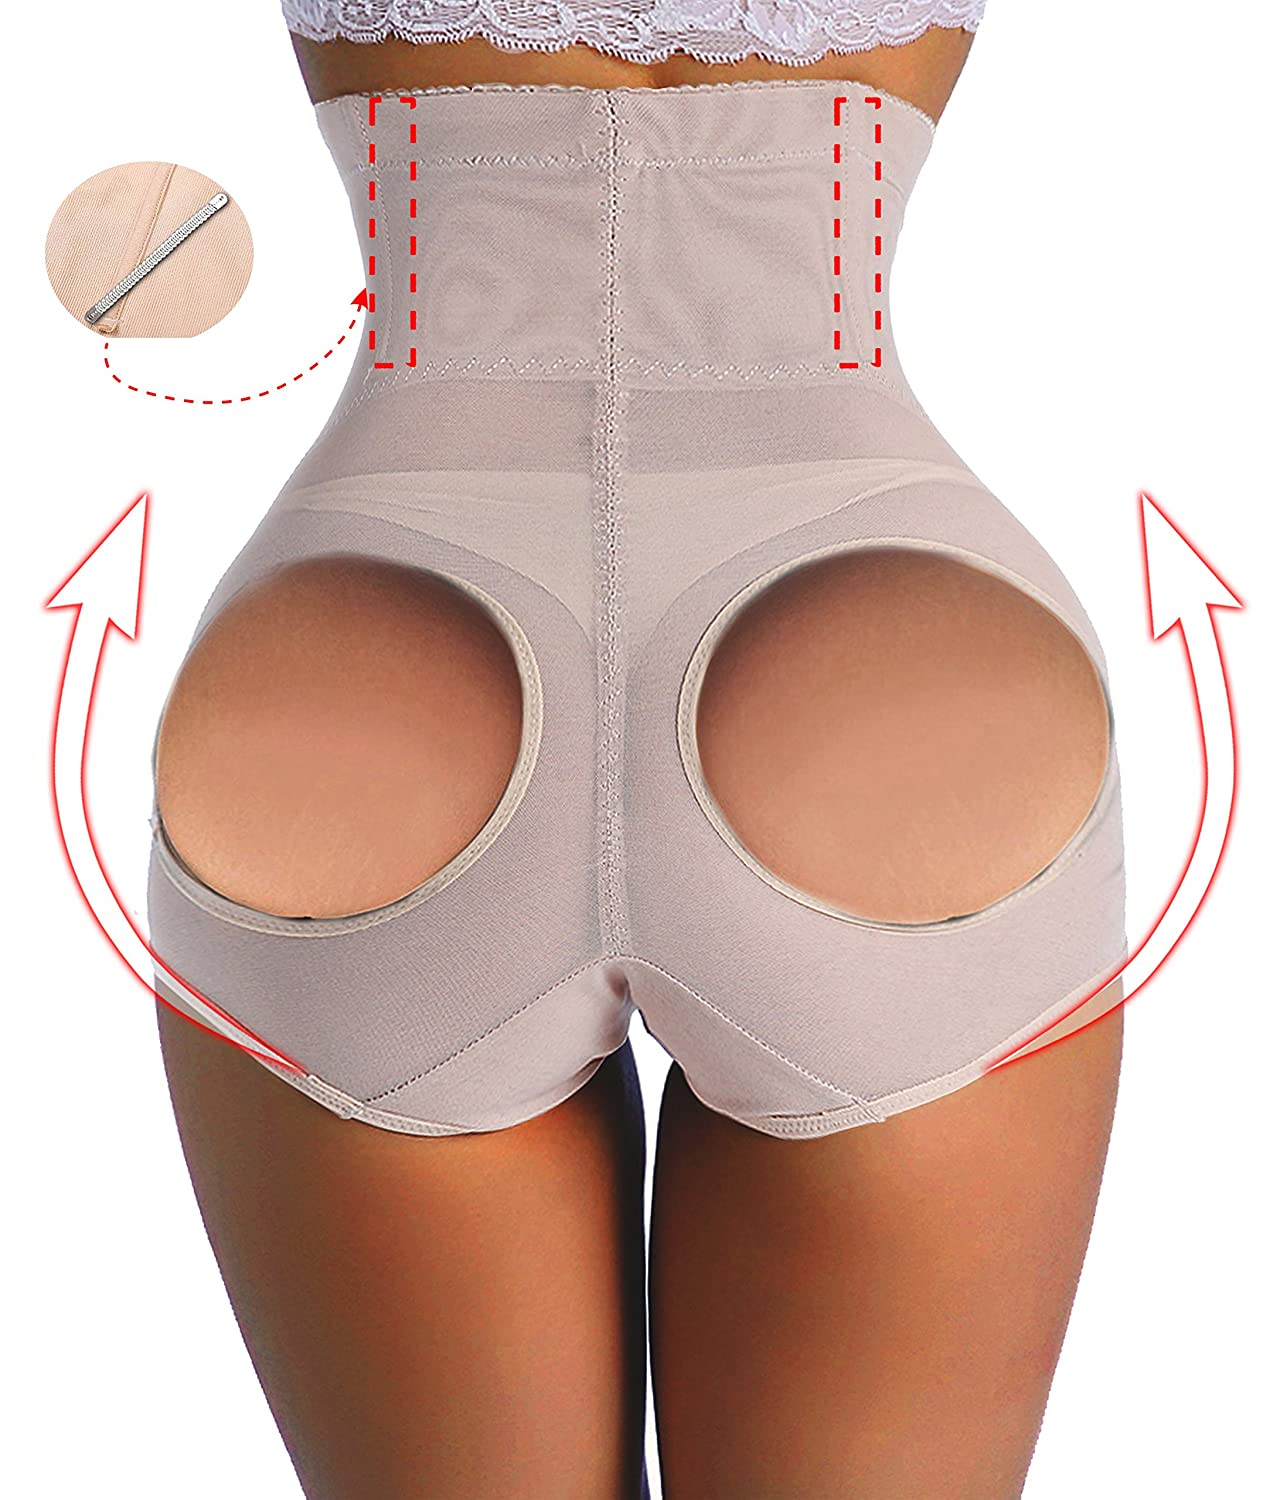 Waist Cincher Butt Enhancer Butt Lifter Boyshort Tummy Control Panties Shapers